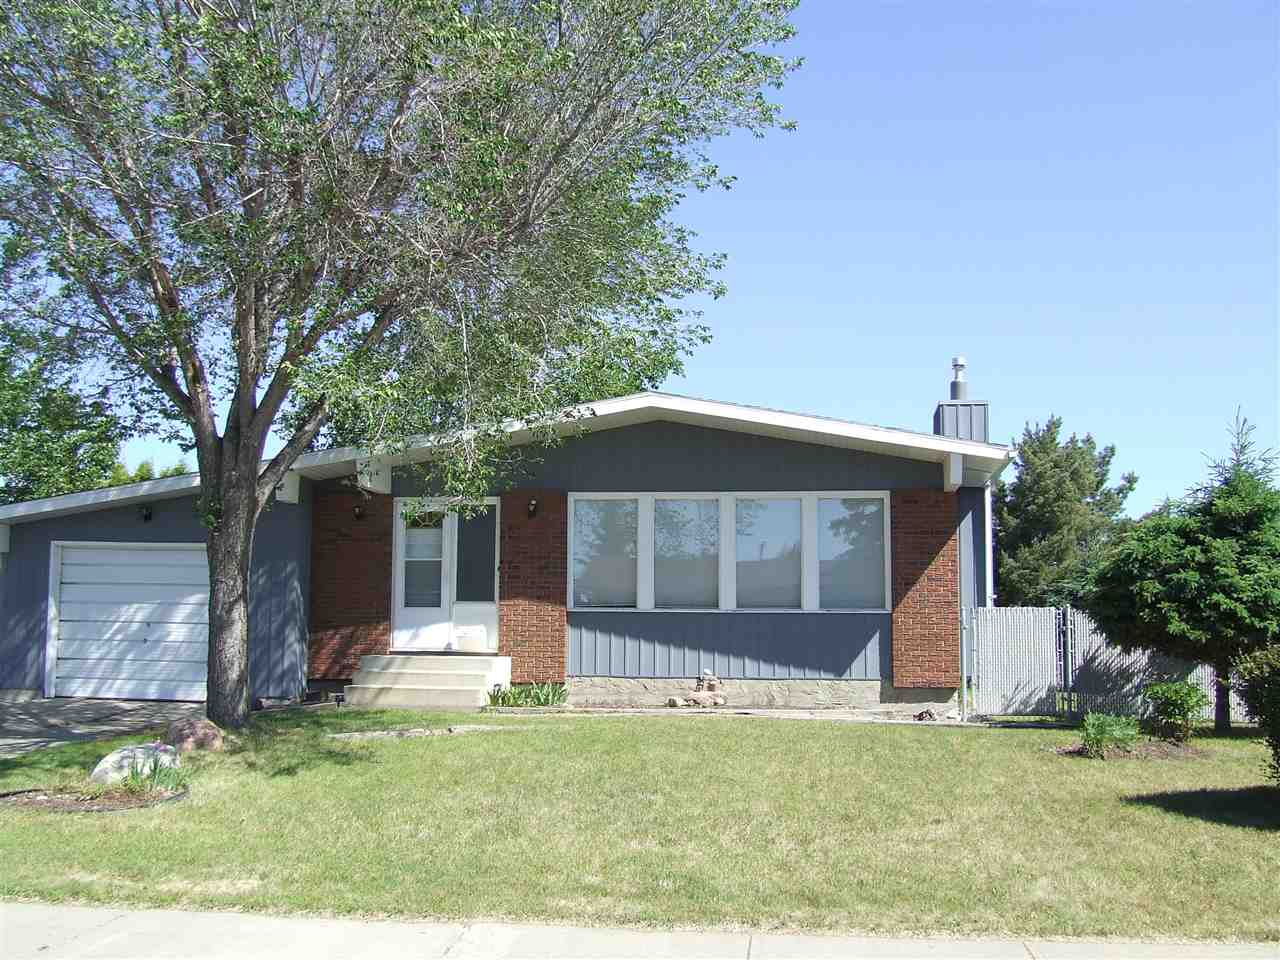 Main Photo: 4202 37 Avenue: Leduc House for sale : MLS®# E4116998